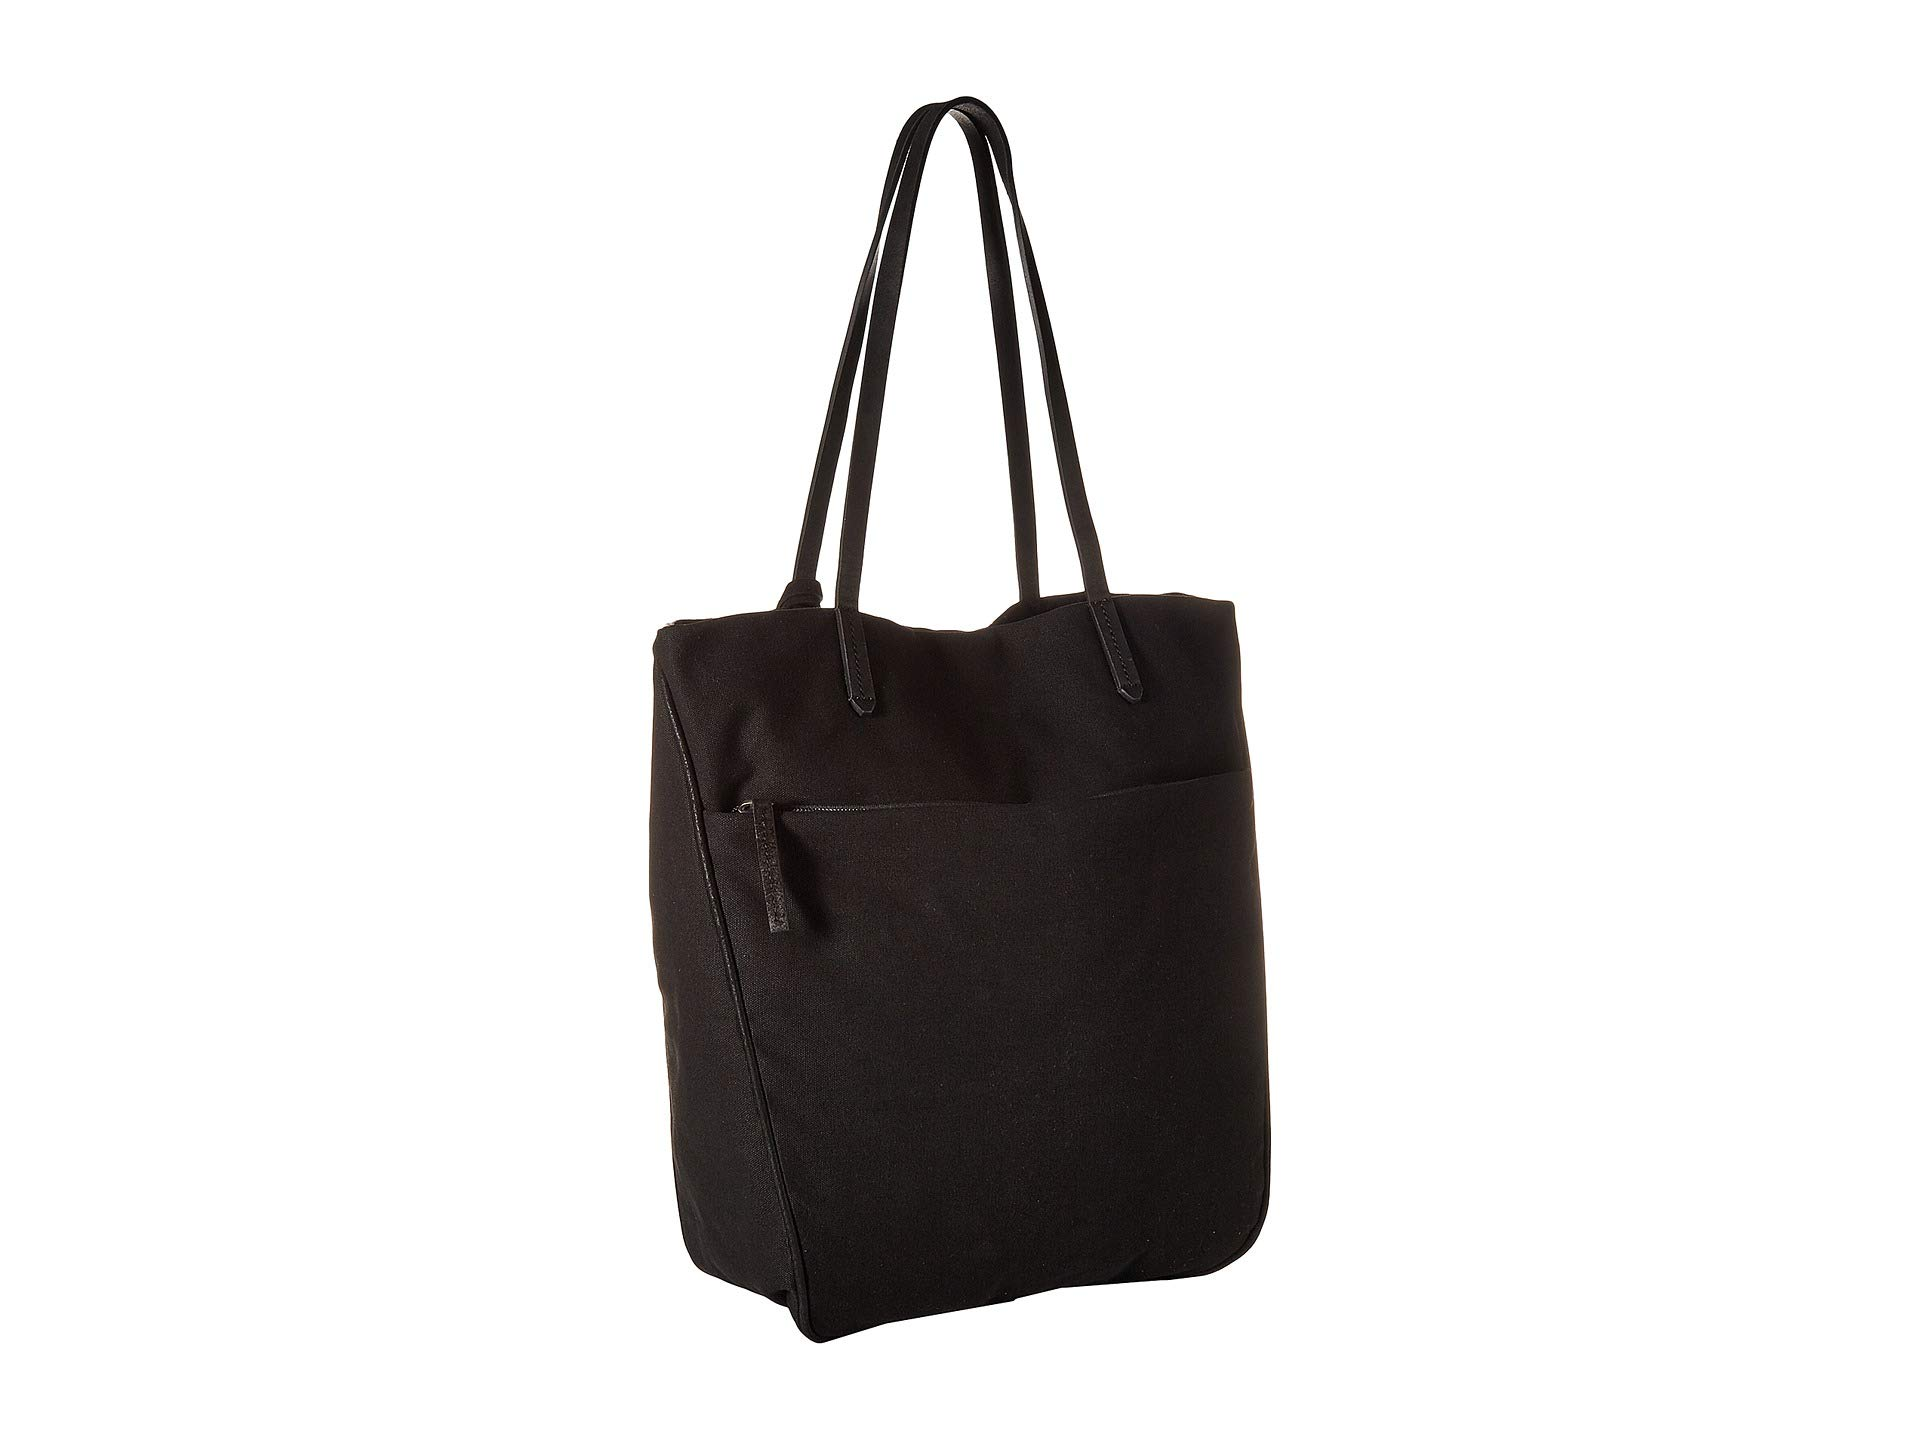 Tote Reeve Lucky Black white Brand w14qUxE4R